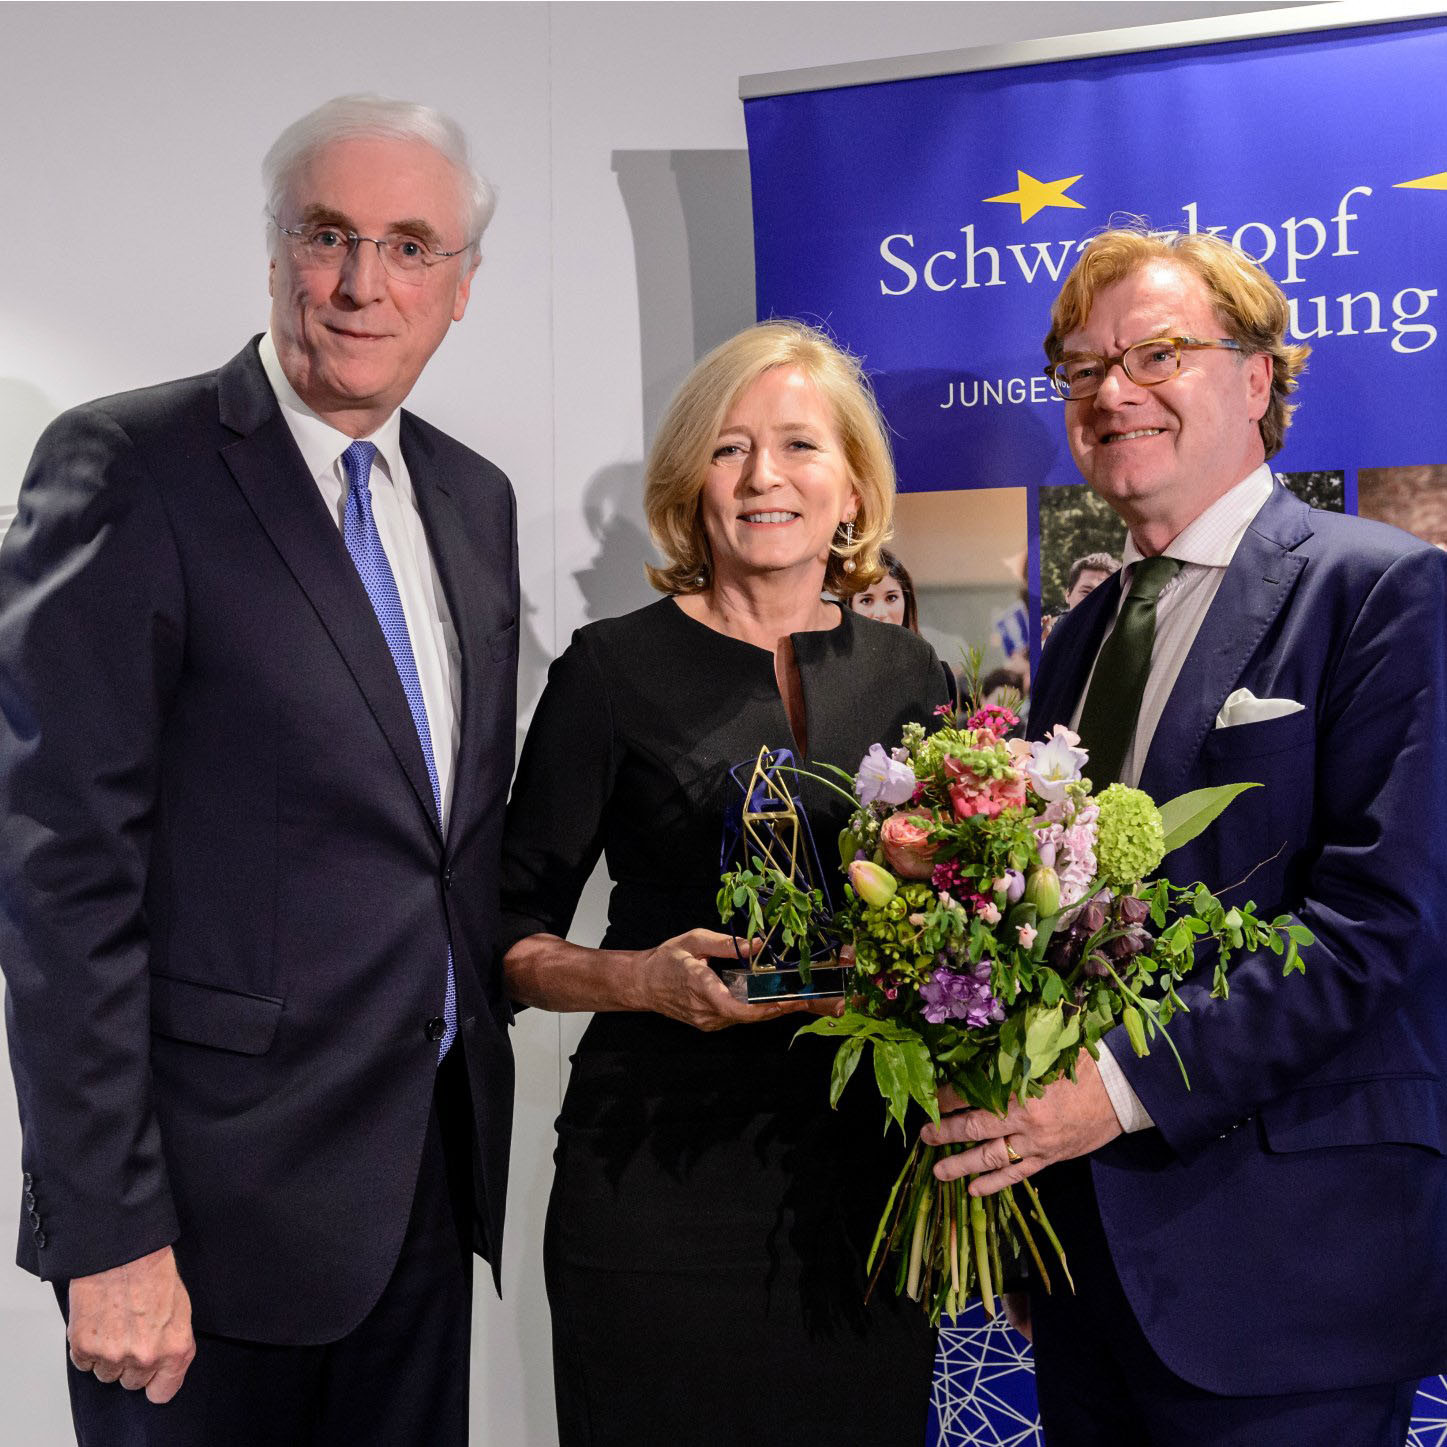 The European Ombudsman, after receiving the Schwarzkopf Europe Award 2017. She is pictured with (right) André Schmitz-Schwarzkopf, and (left) Irish Ambassador to Berlin, Michael Collins.